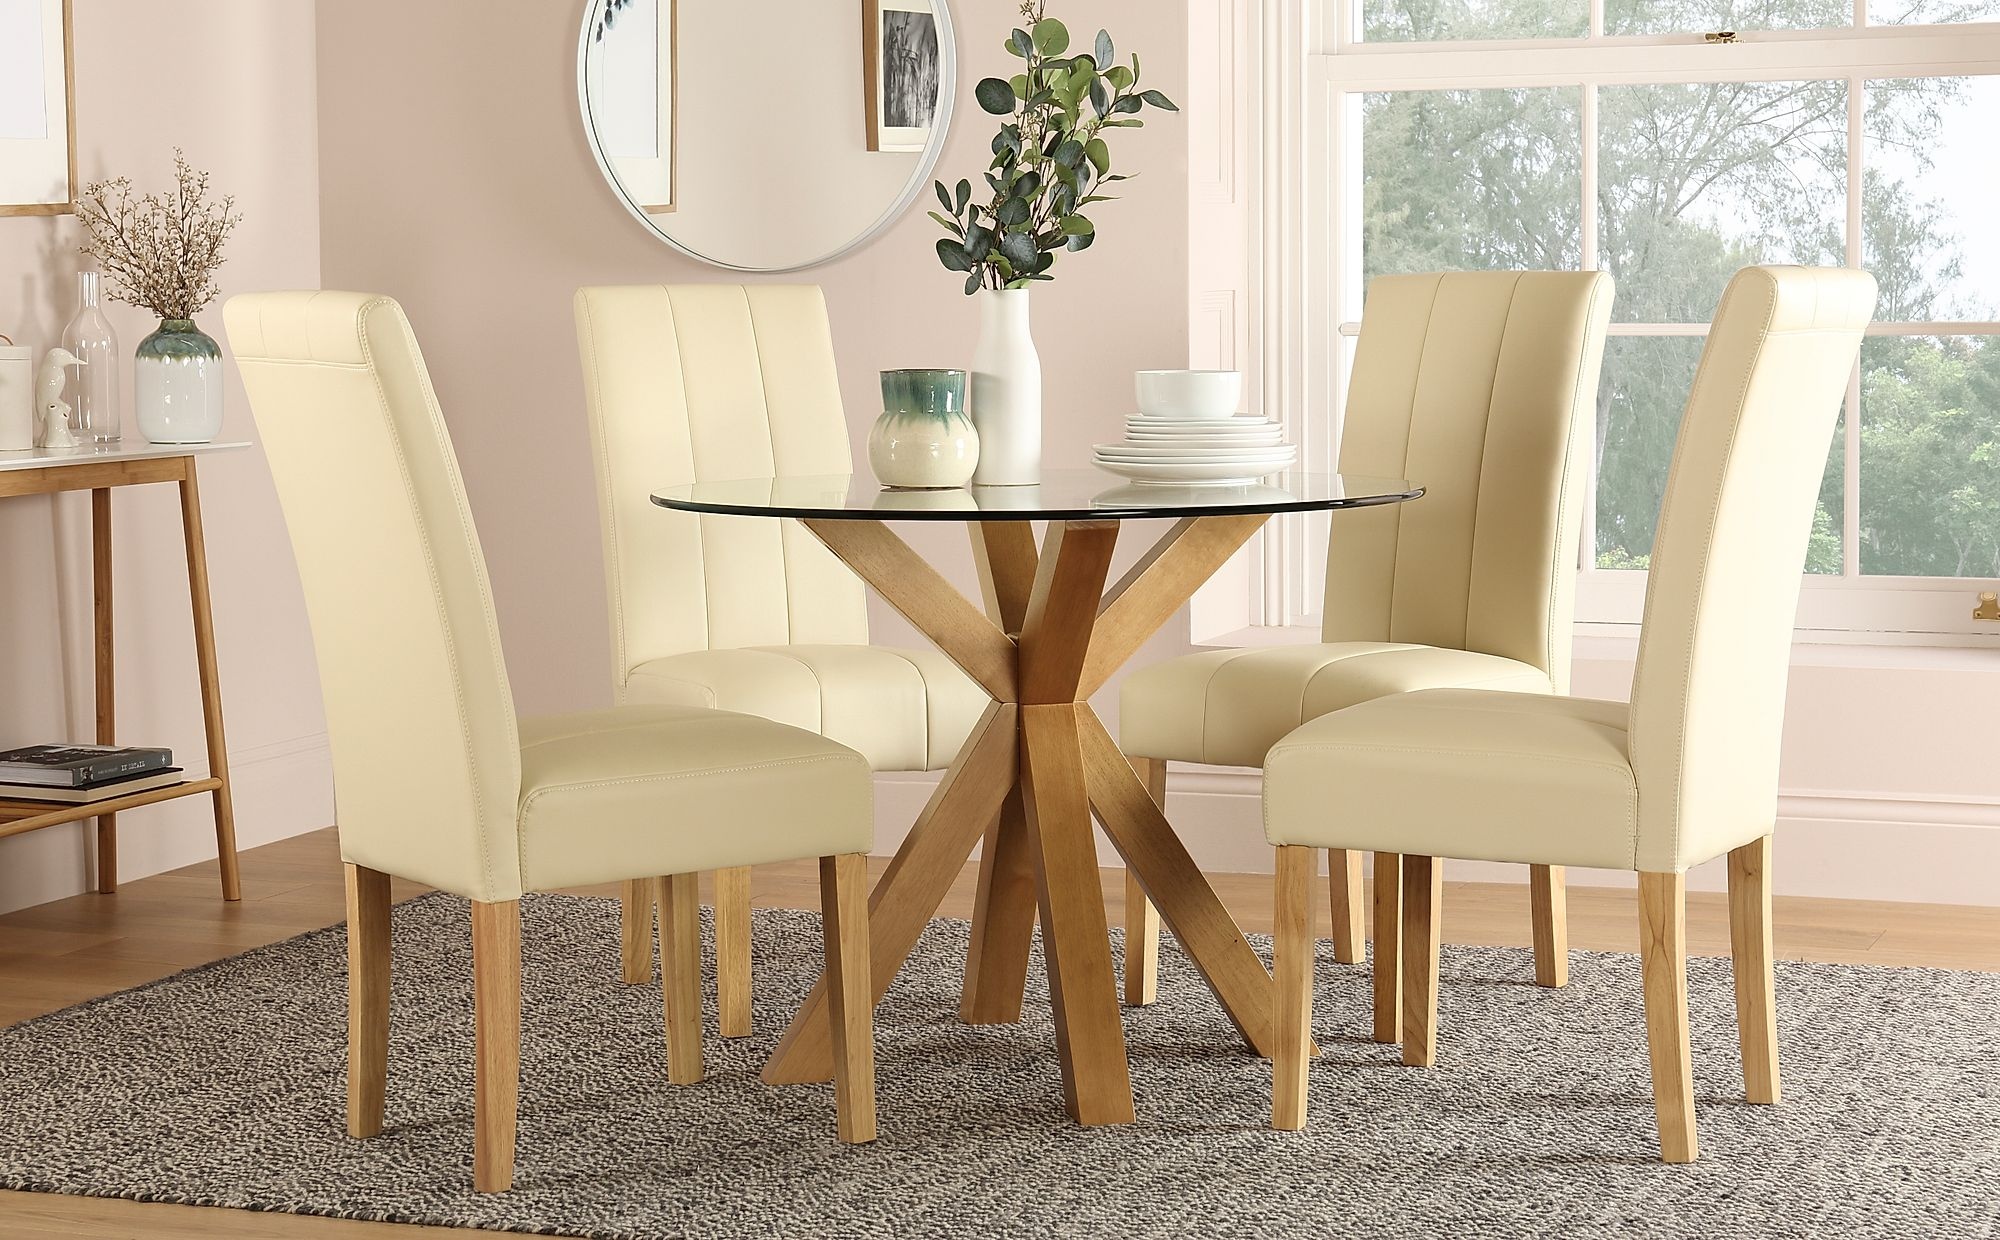 4 Optimal Choices In Glass Dining Table And Chairs: Hatton Round Oak And Glass Dining Table With 4 Carrick